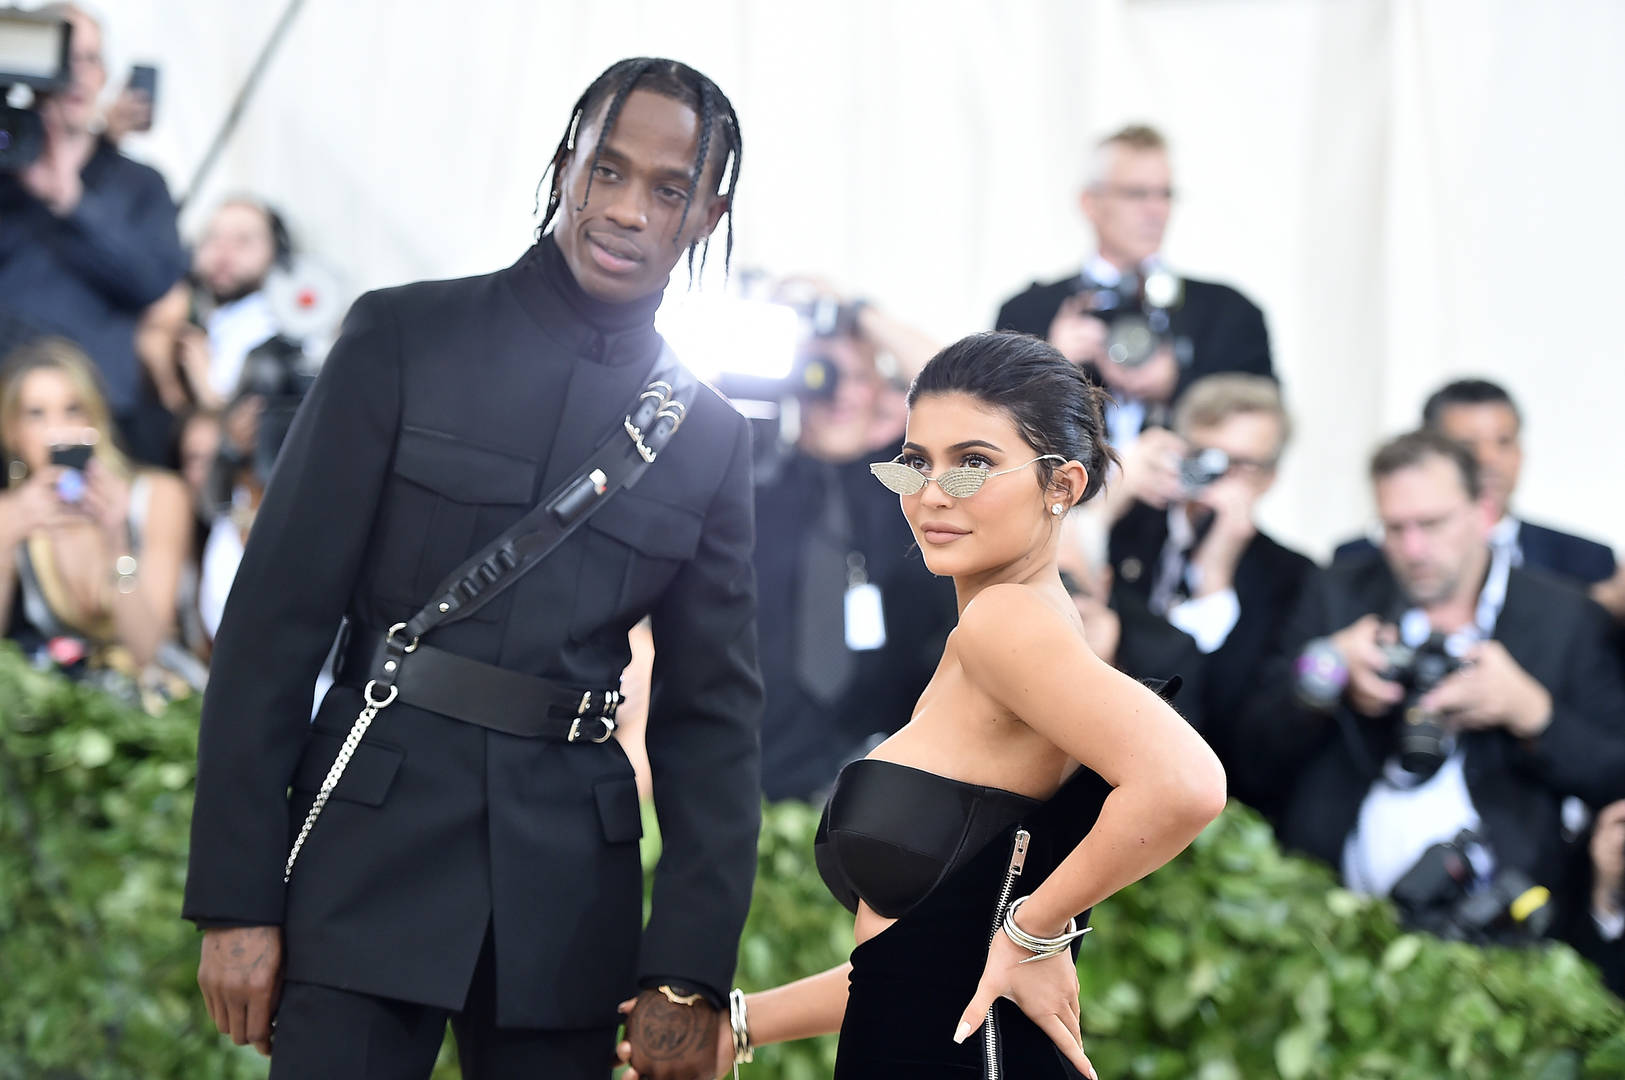 Stormi Webster Had The Cutest Reaction To Travis Scott's Super Bowl Performance